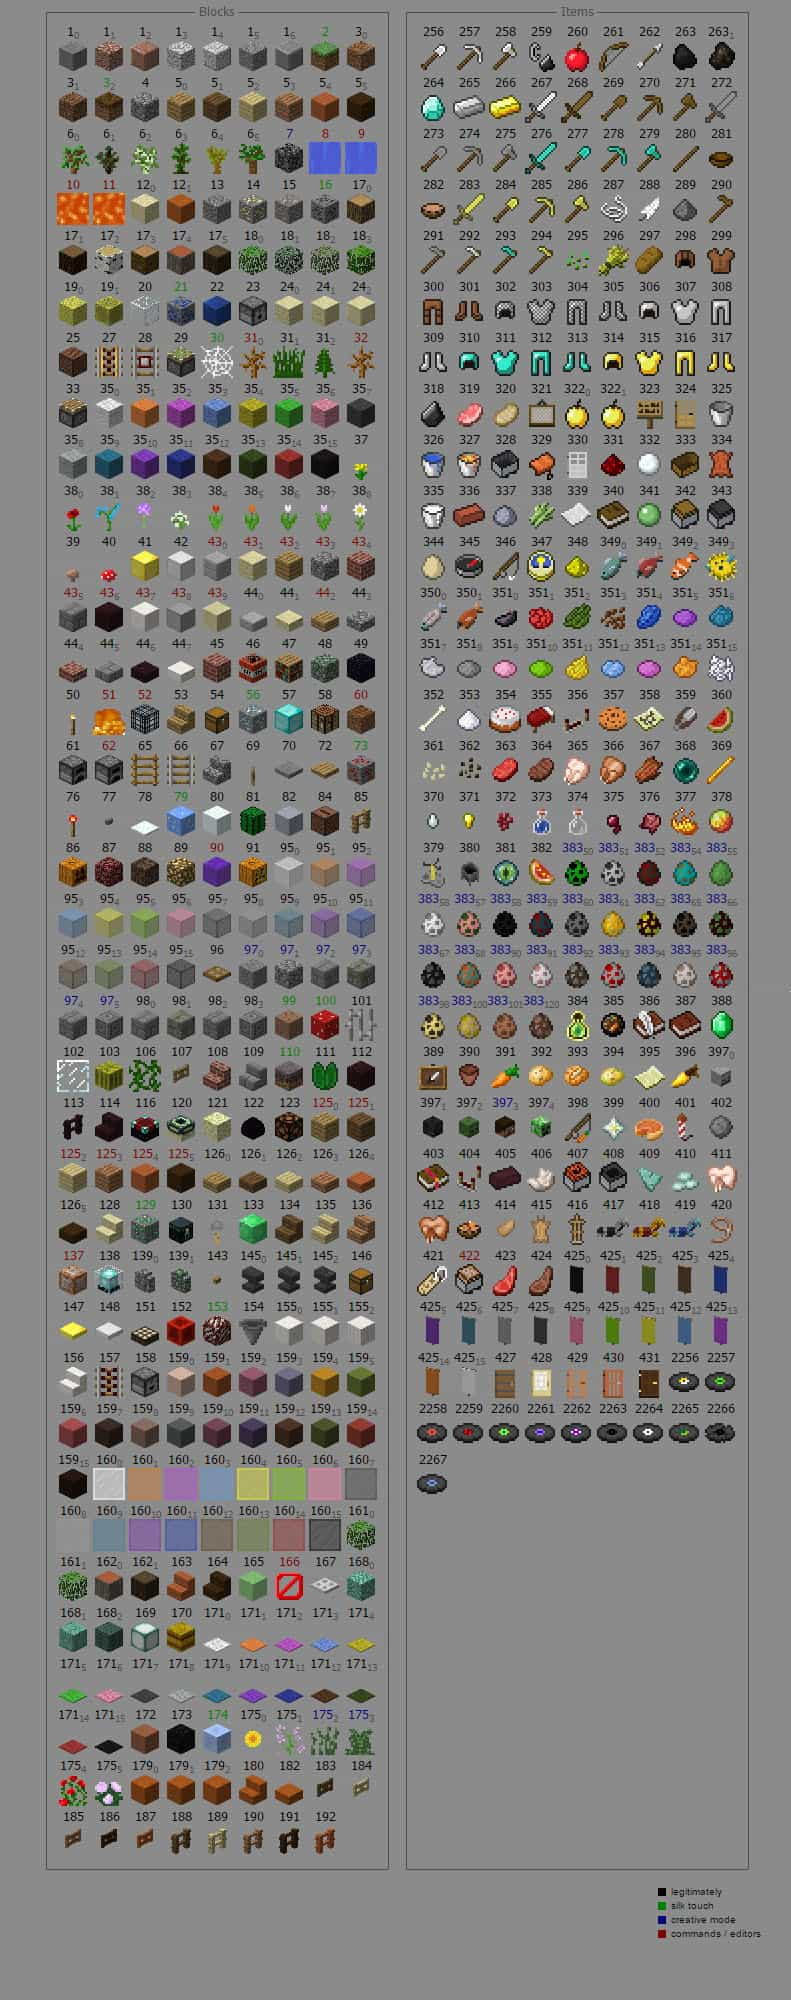 Minecraft id chart 1.8 items and blocks